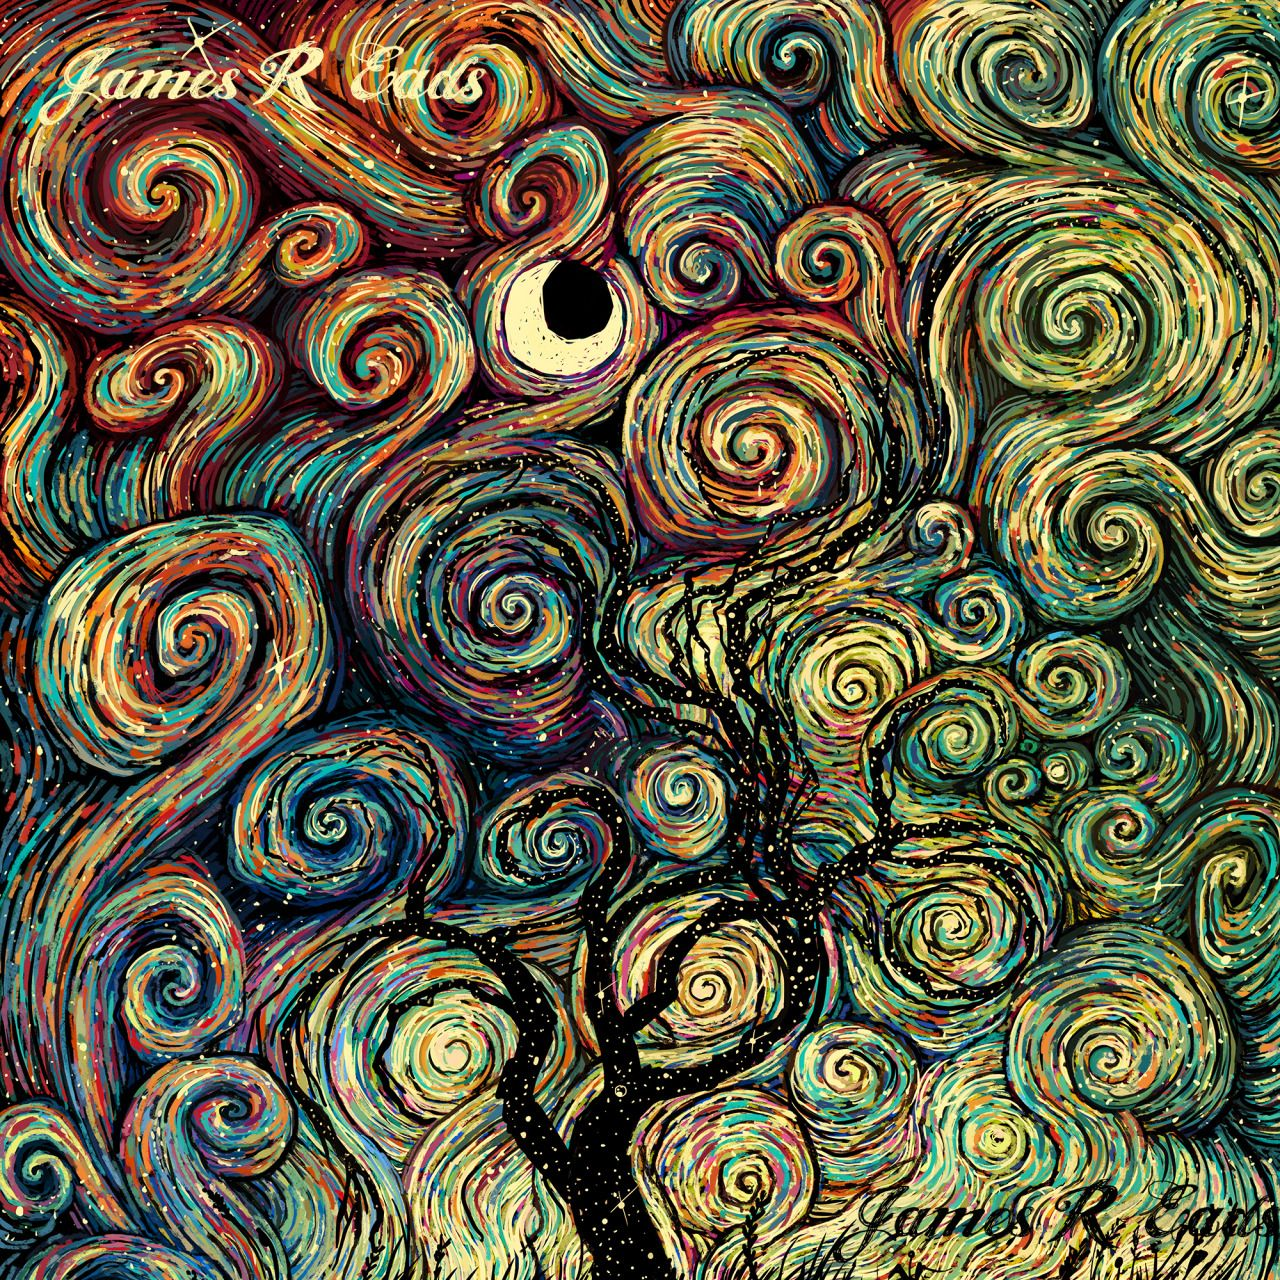 James R. Eads: swirl me in your mind so I can be a color painting you can look upon